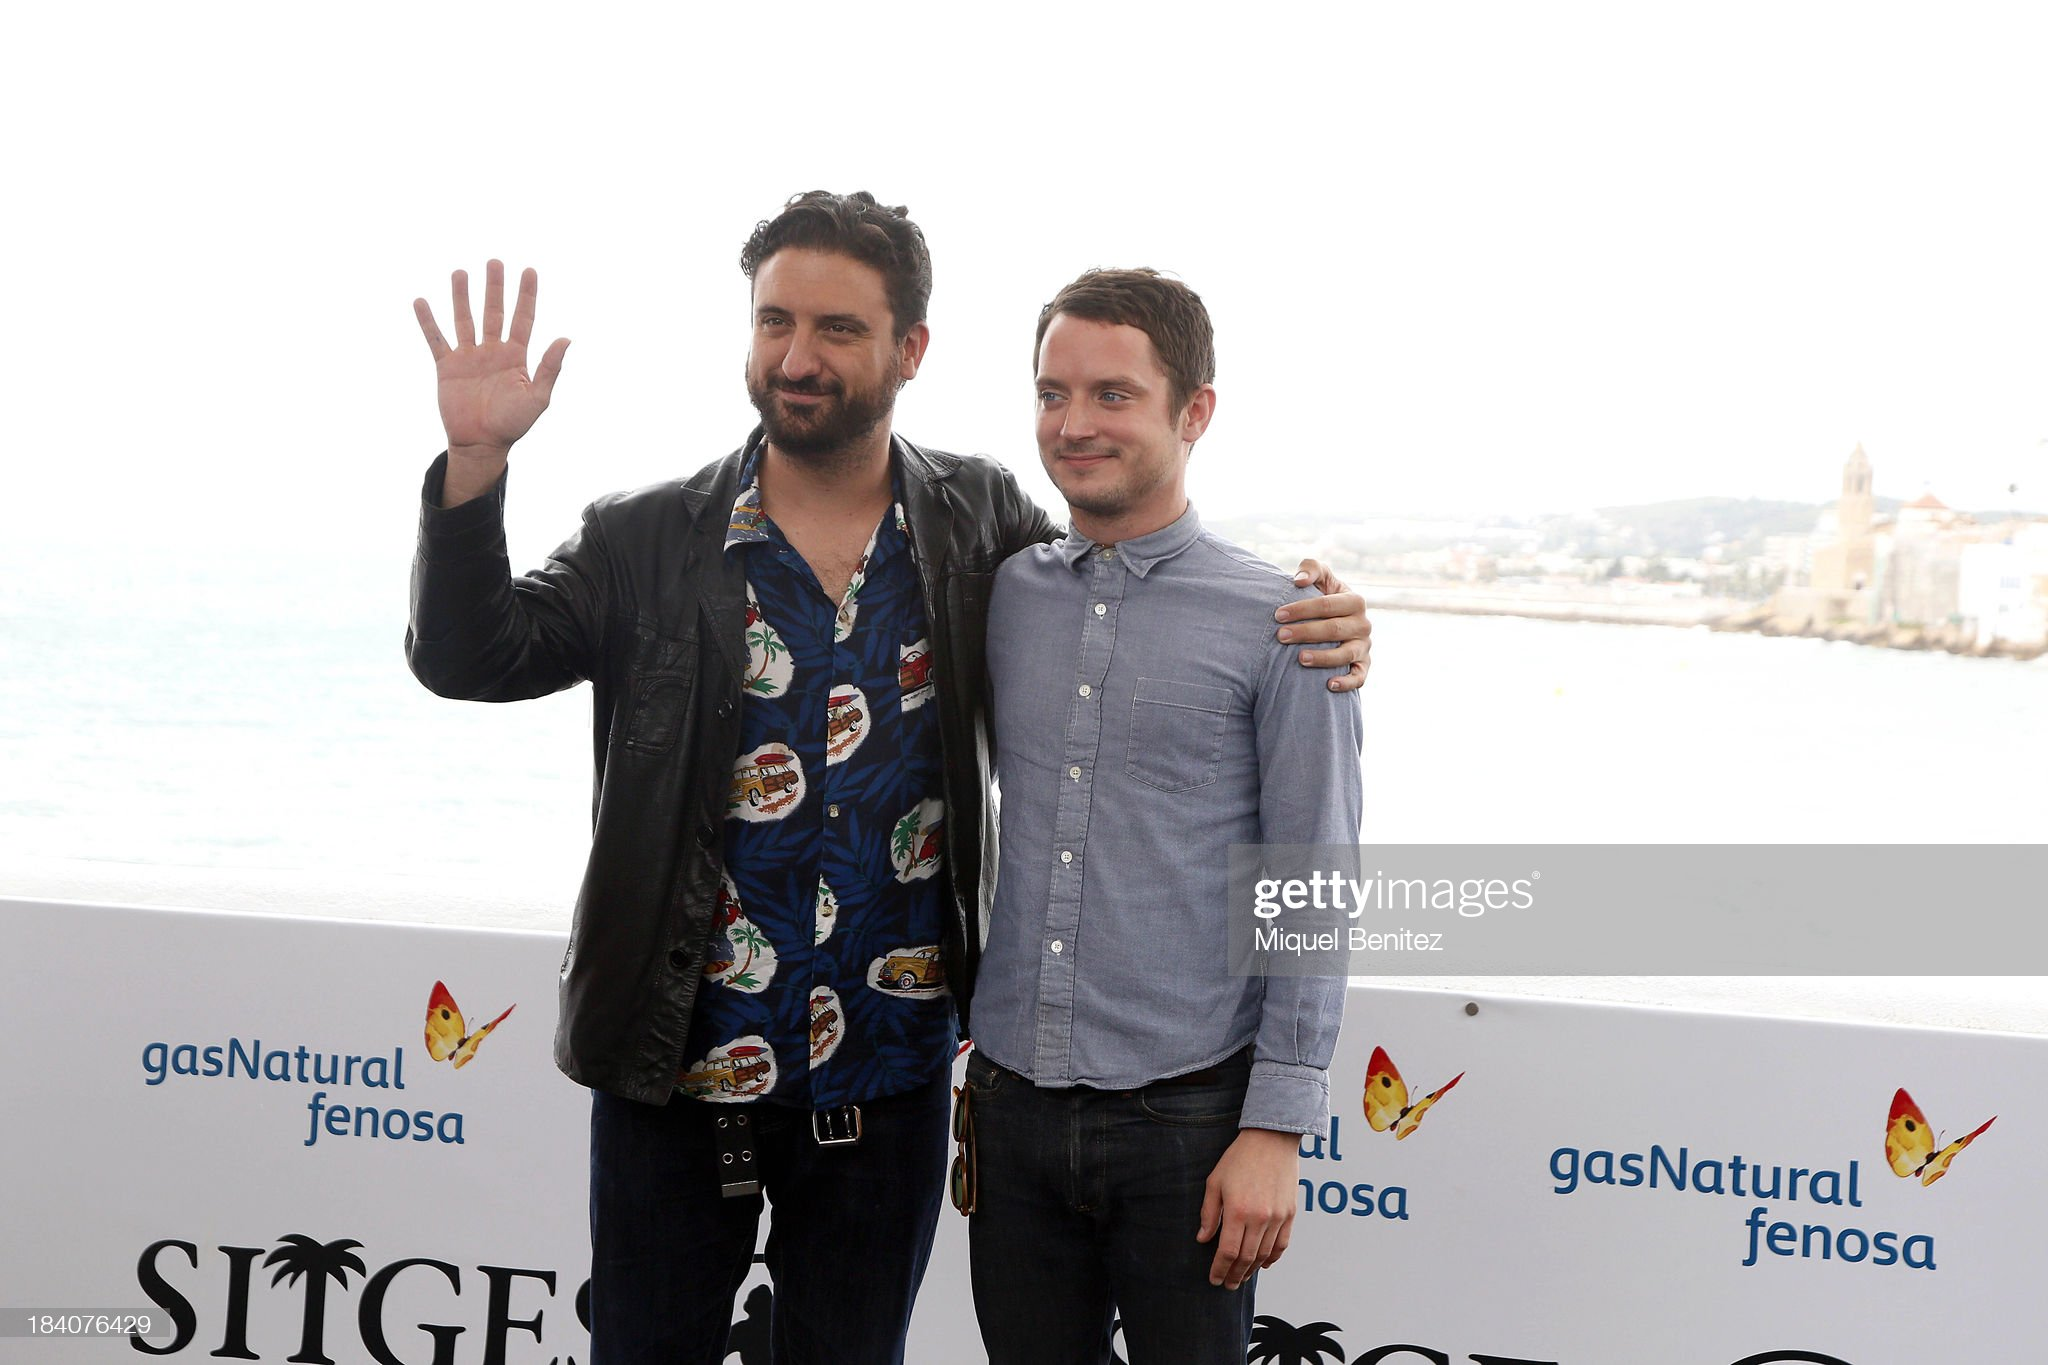 ¿Cuánto mide Eugenio Mira? - Altura Spanish-director-eugenio-mira-and-actor-elijah-wood-attend-a-press-picture-id184076429?s=2048x2048